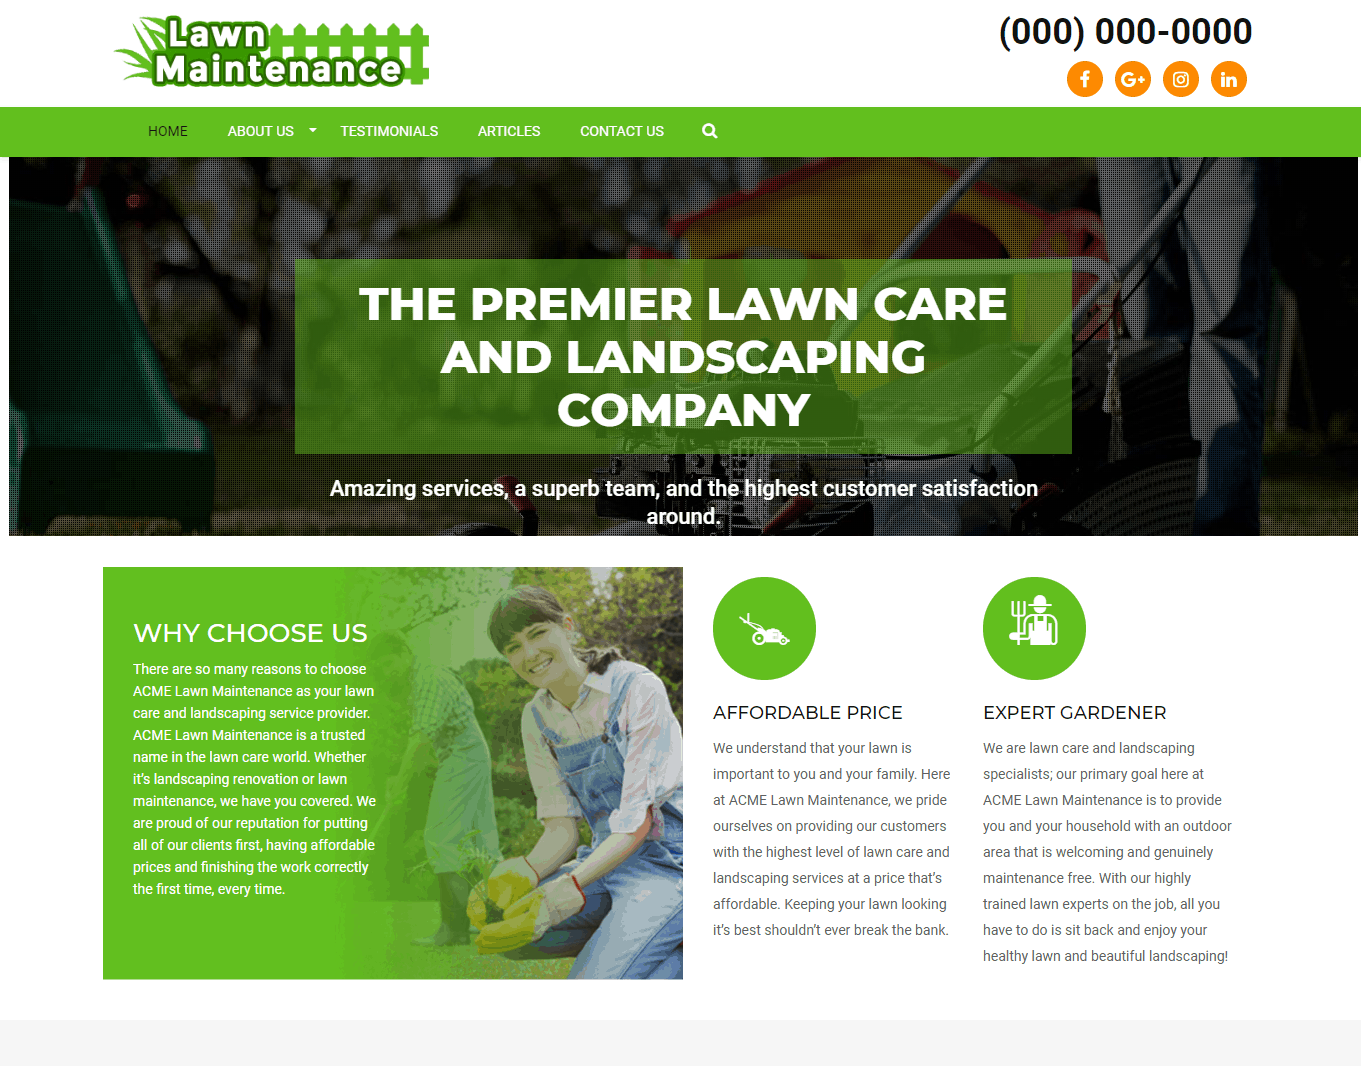 lawnmaintenance